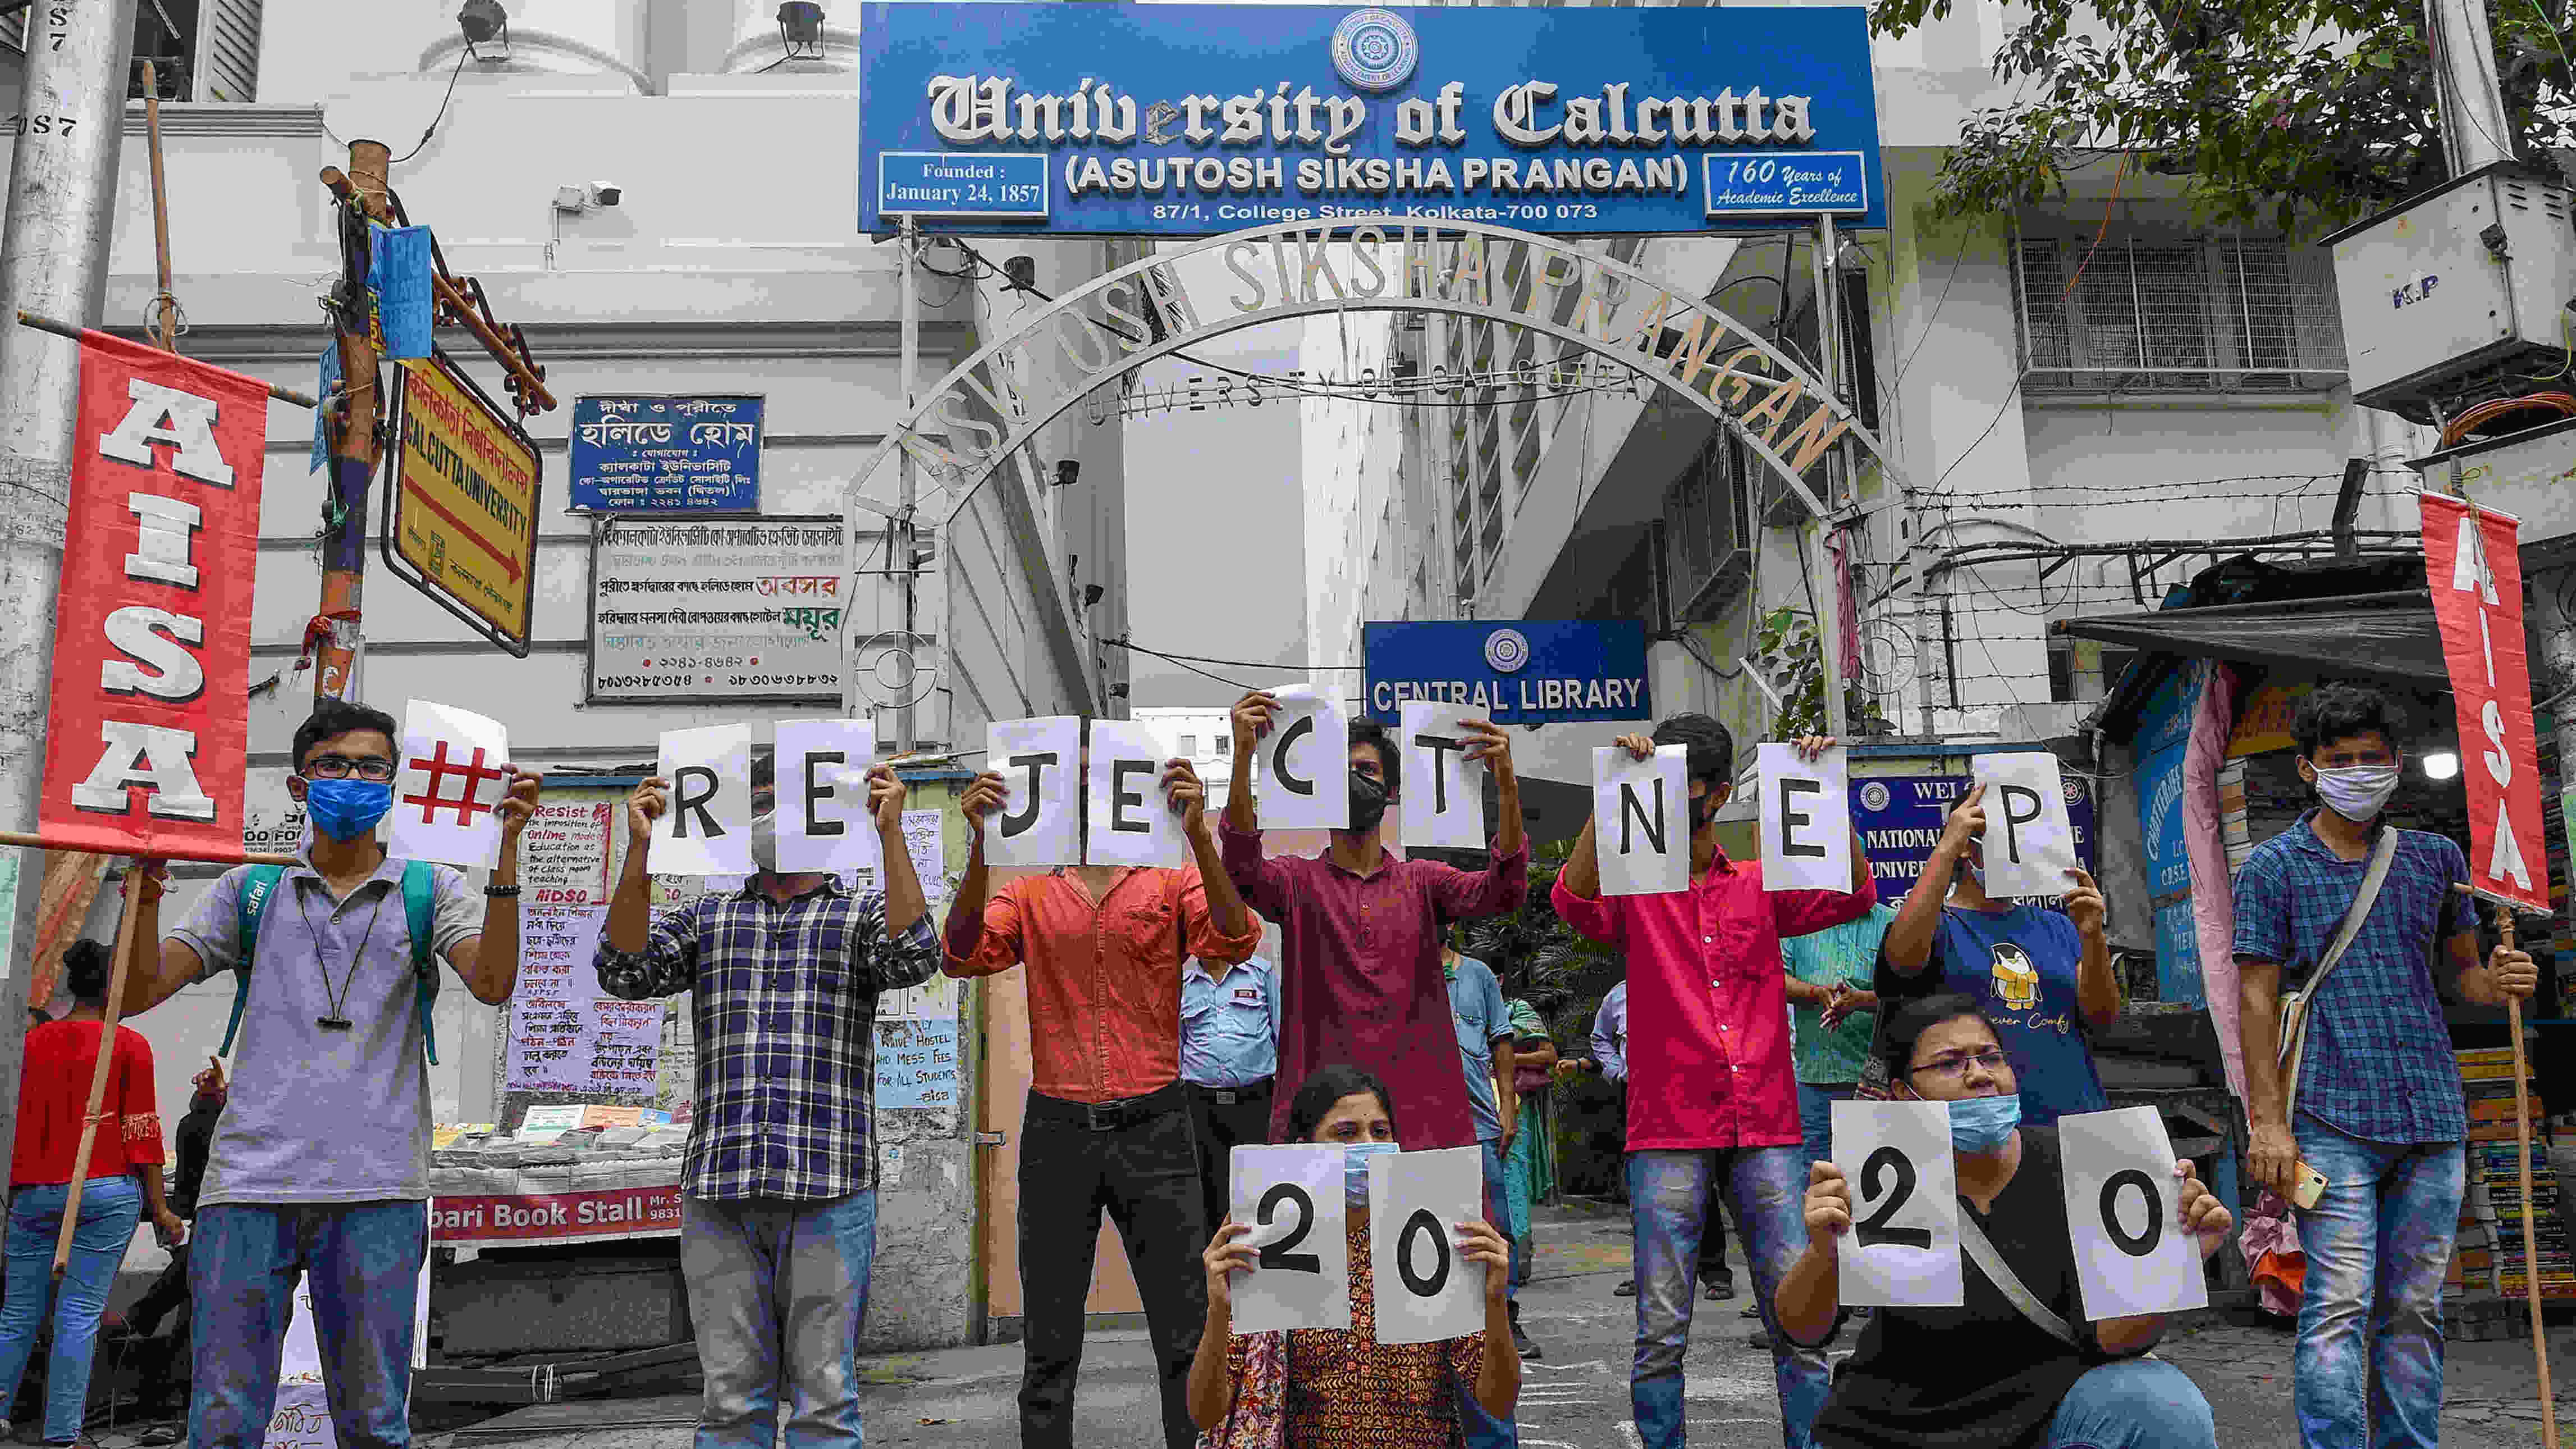 Members of All India Students Association during a demonstration against the National Education Policy 2020, in Kolkata, Wednesday, Aug 12, 2020.